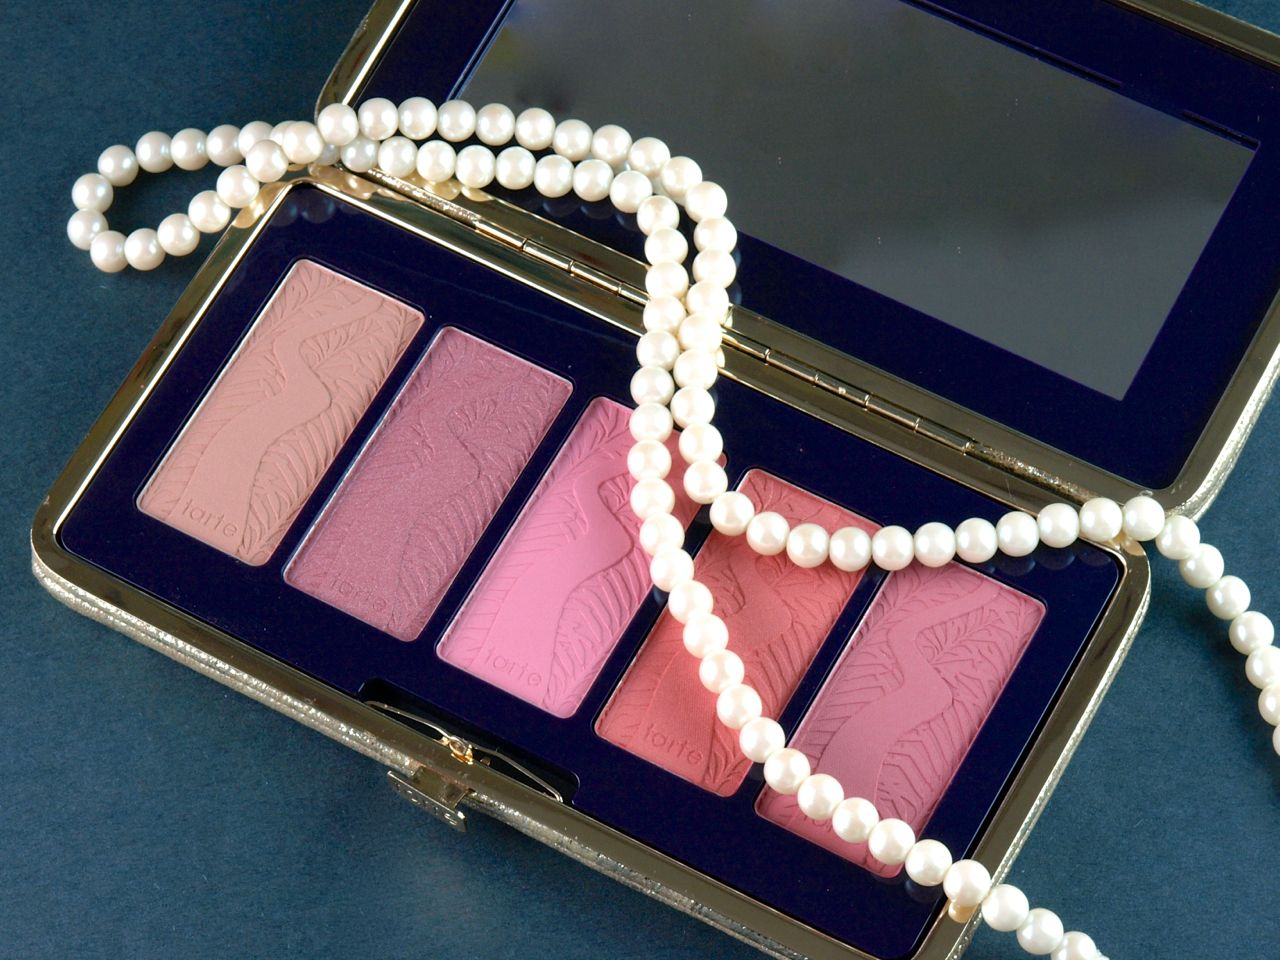 Tarte Holiday 2014 Pin Up Girl Amazonian Clay 12-Hour Blush Palette: Review and Swatches